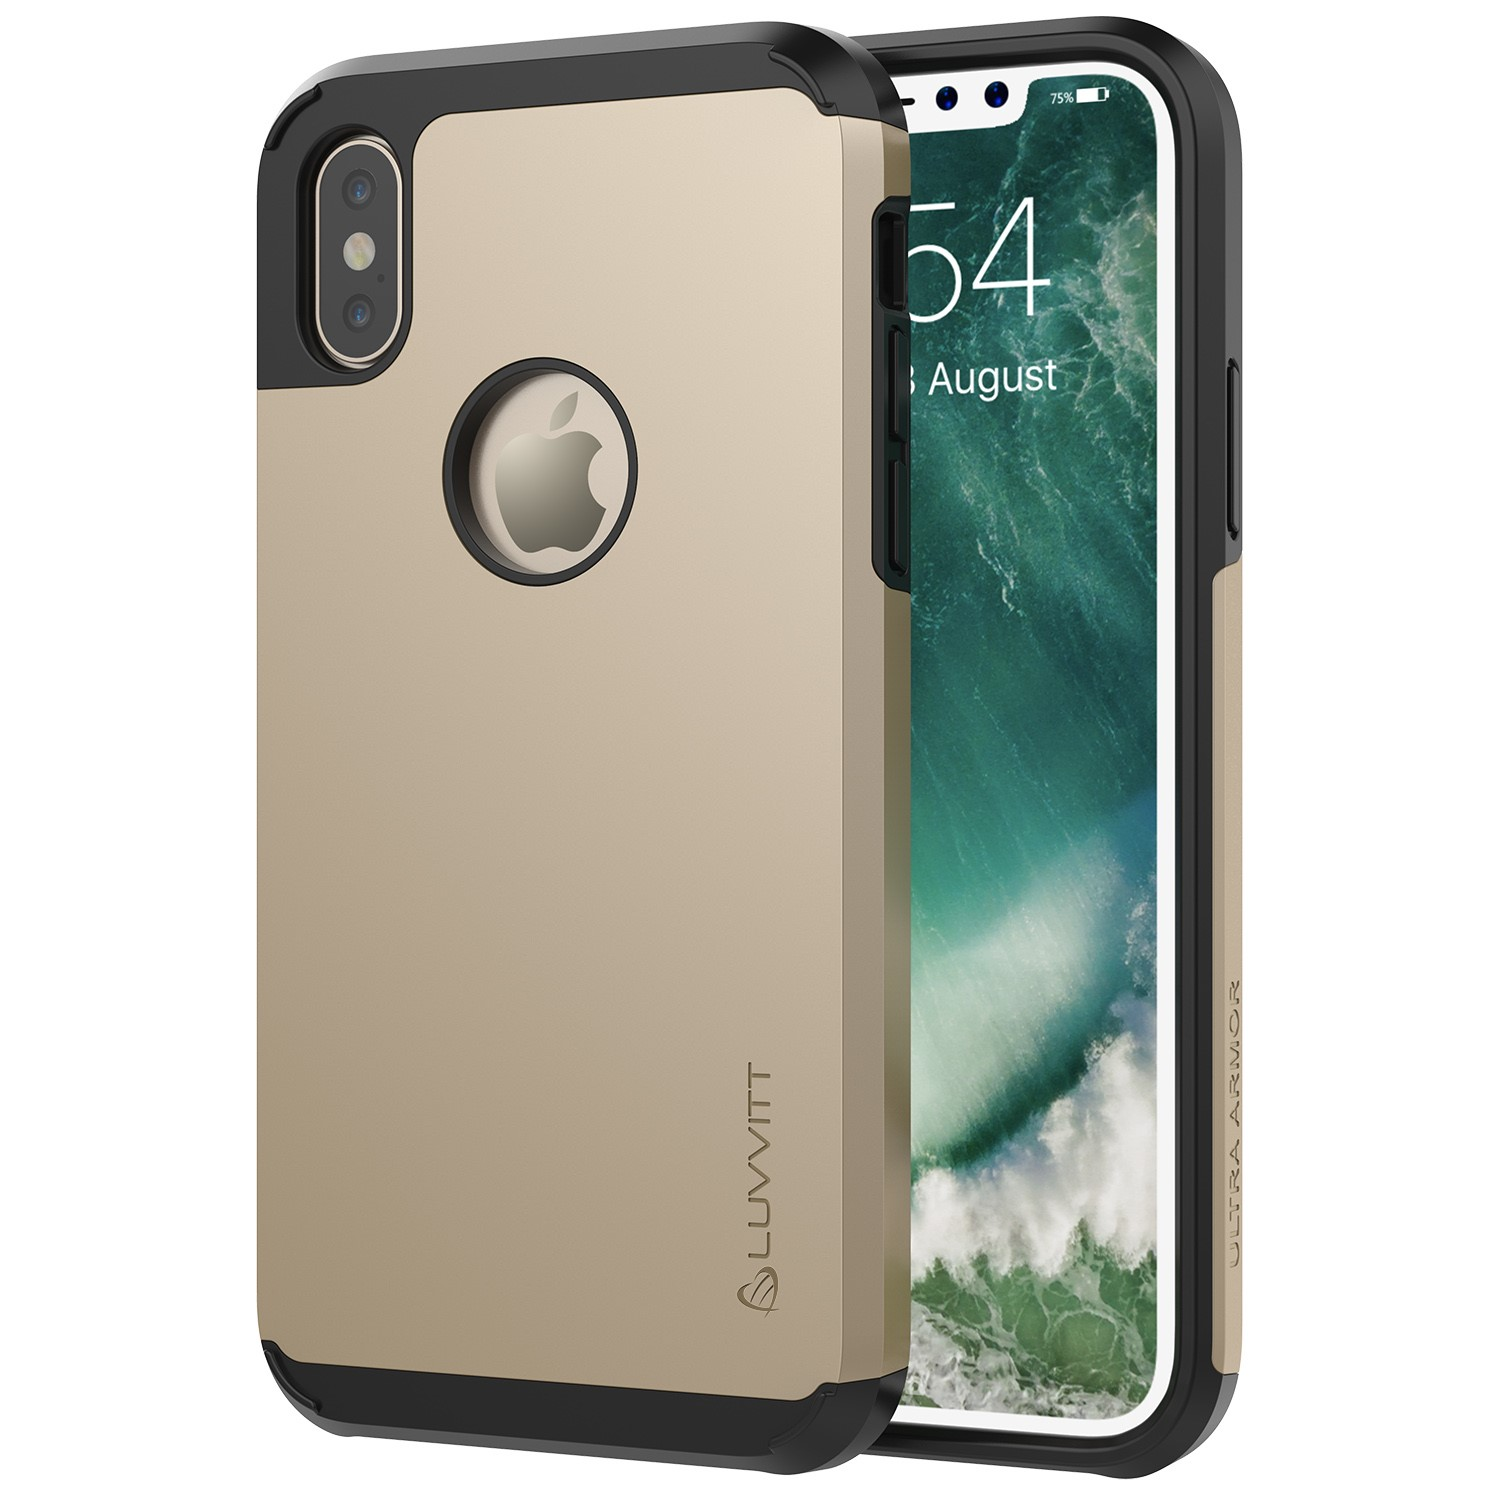 iPhone XS Case, Luvvitt Ultra Armor iPhone Cover with Dual Layer Heavy Duty Protection and Air Bounce Technology for iPhone X and XS with 5.8 inch Screen 2017-2018 - Black